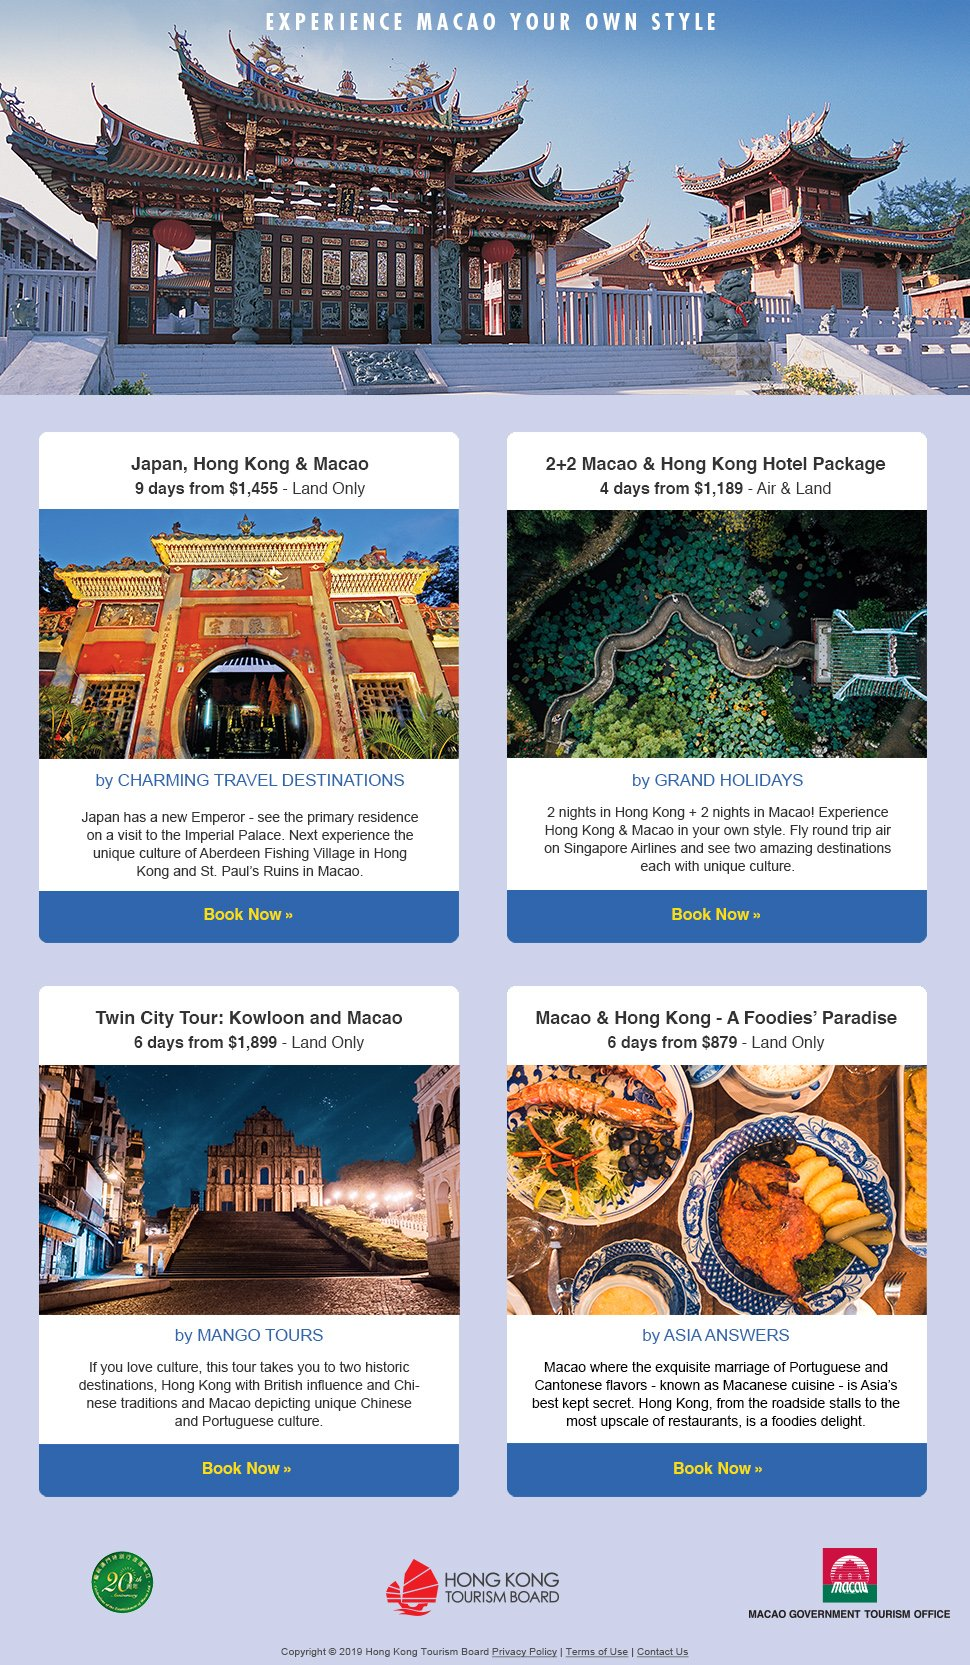 Experience Macao Your Own Style